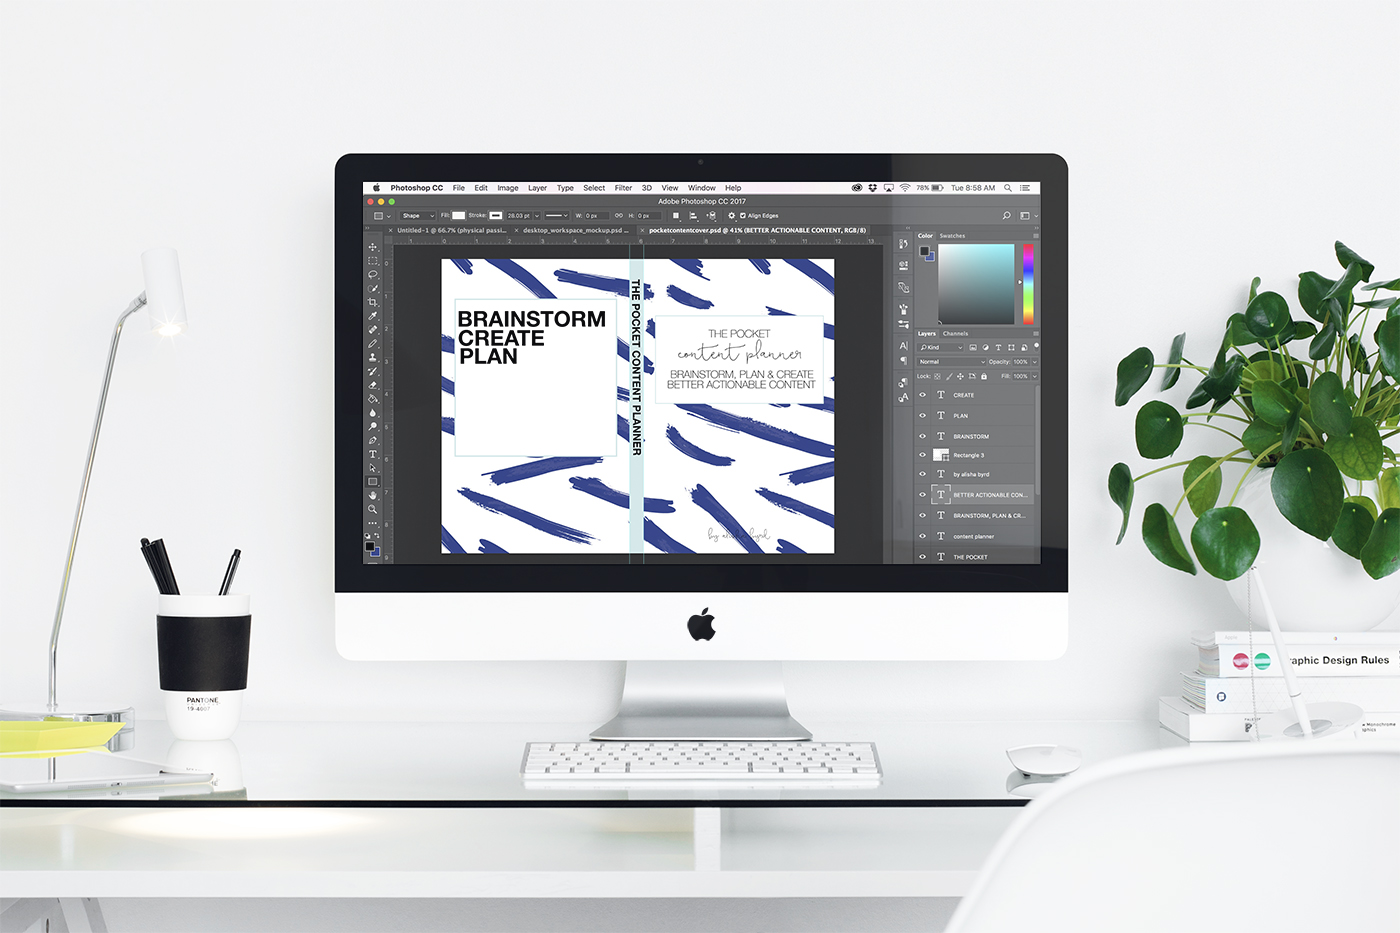 snag your spot - You'll immediately receive access to the 6 video lessons, full video walk through of Adobe InDesign & Photoshop, worksheets to use with the lessons and lifetime access to the class plus any future updates.